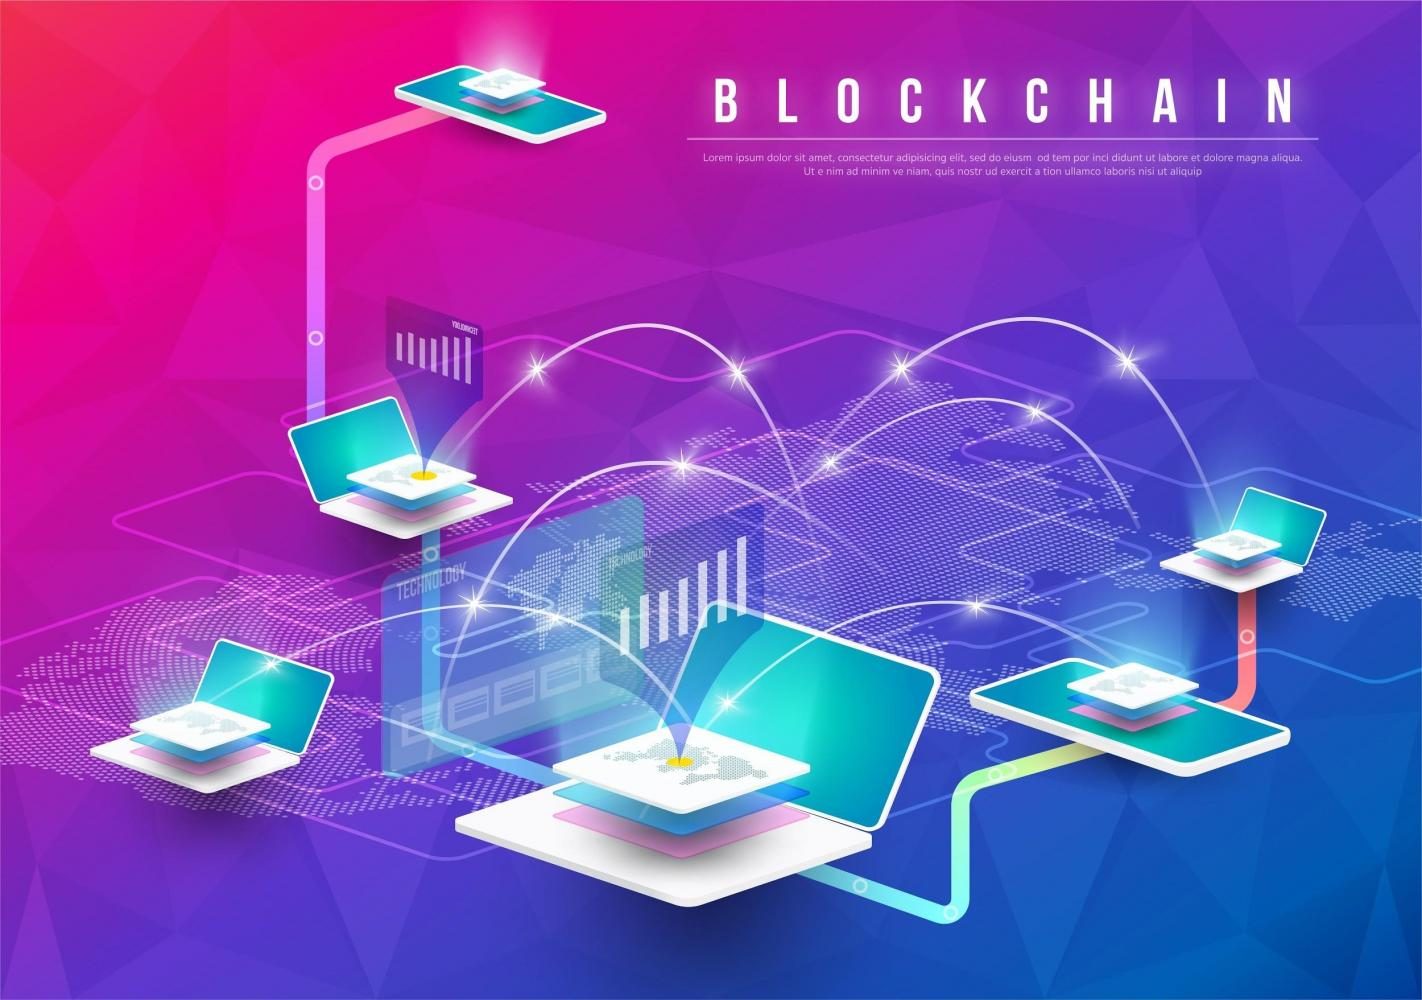 An illustration of blockchain technology, which has shown promise in helping online users better protect their data.